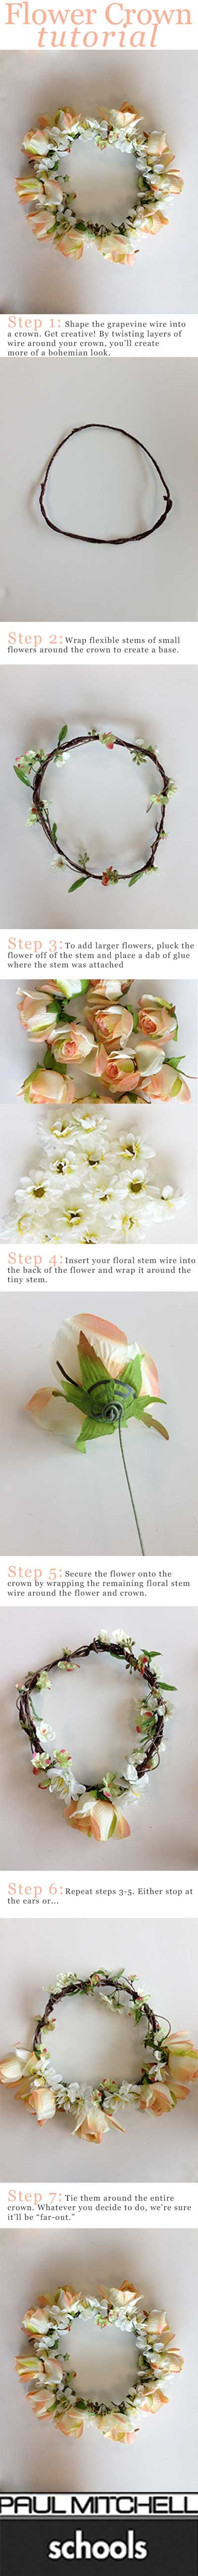 How To Make A Flower Crown #PMTS #PaulMitchellSchools #FlowerCrown